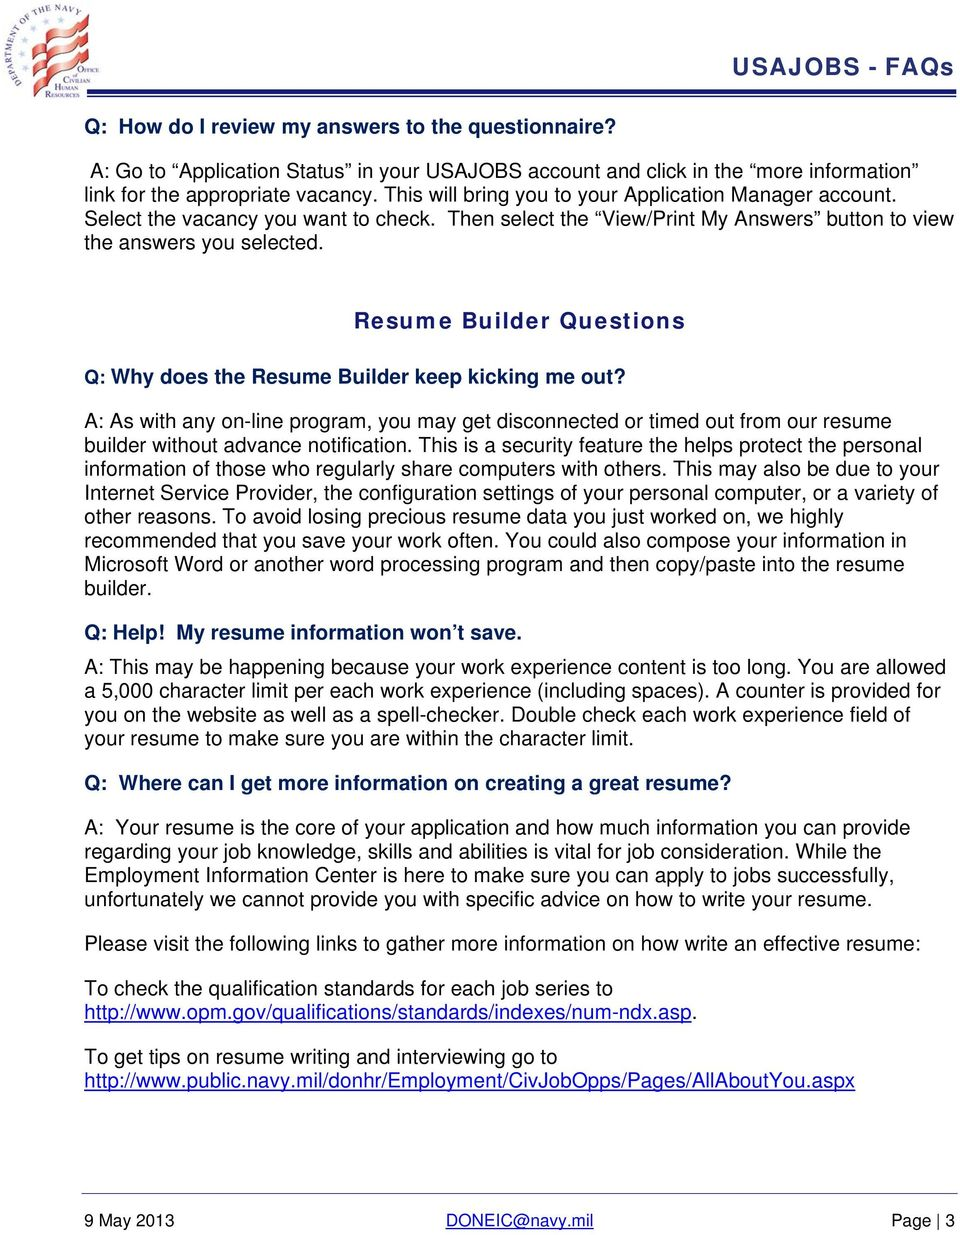 Usajobs Applicant Frequently Asked Questions Faqs Pdf